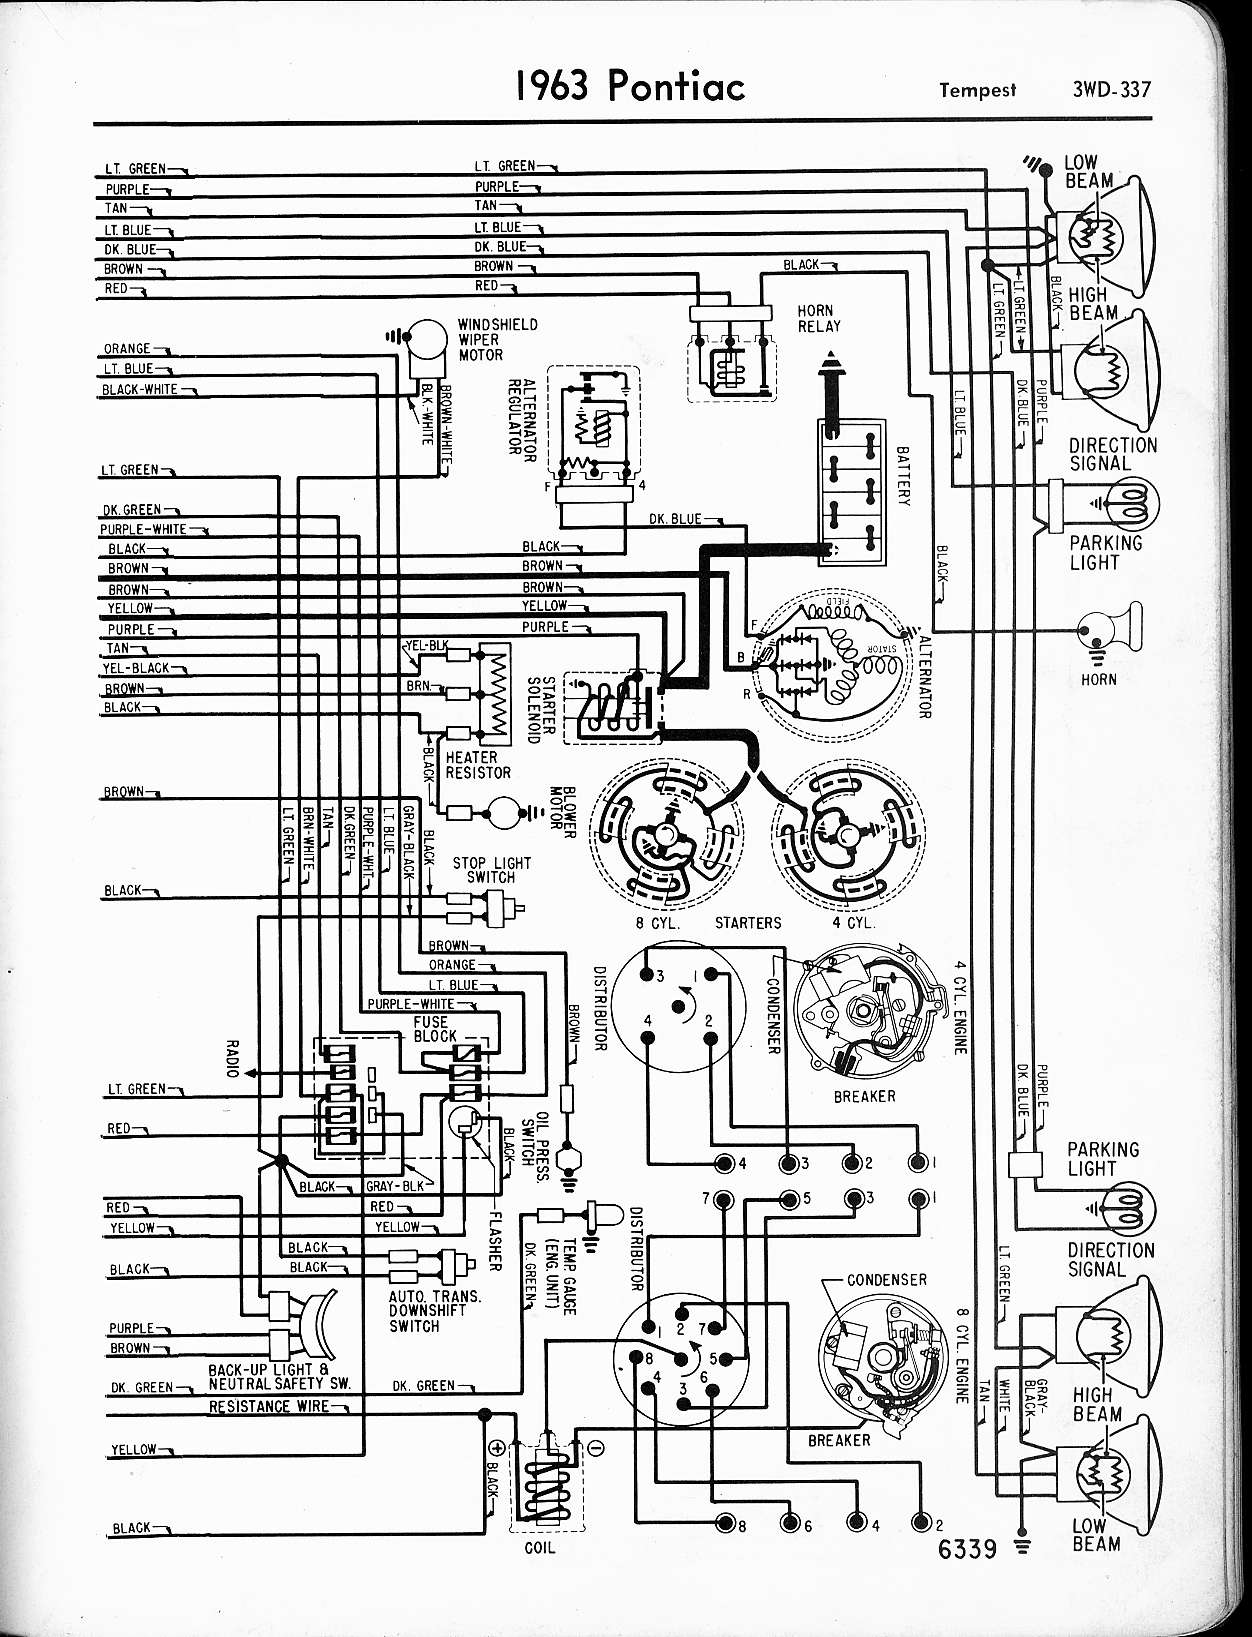 DIAGRAM] Pontiac Gto Wiring Diagram FULL Version HD Quality Wiring Diagram  - ANDROIDBOOKS.ILVACHARTER.ITilvacharter.it